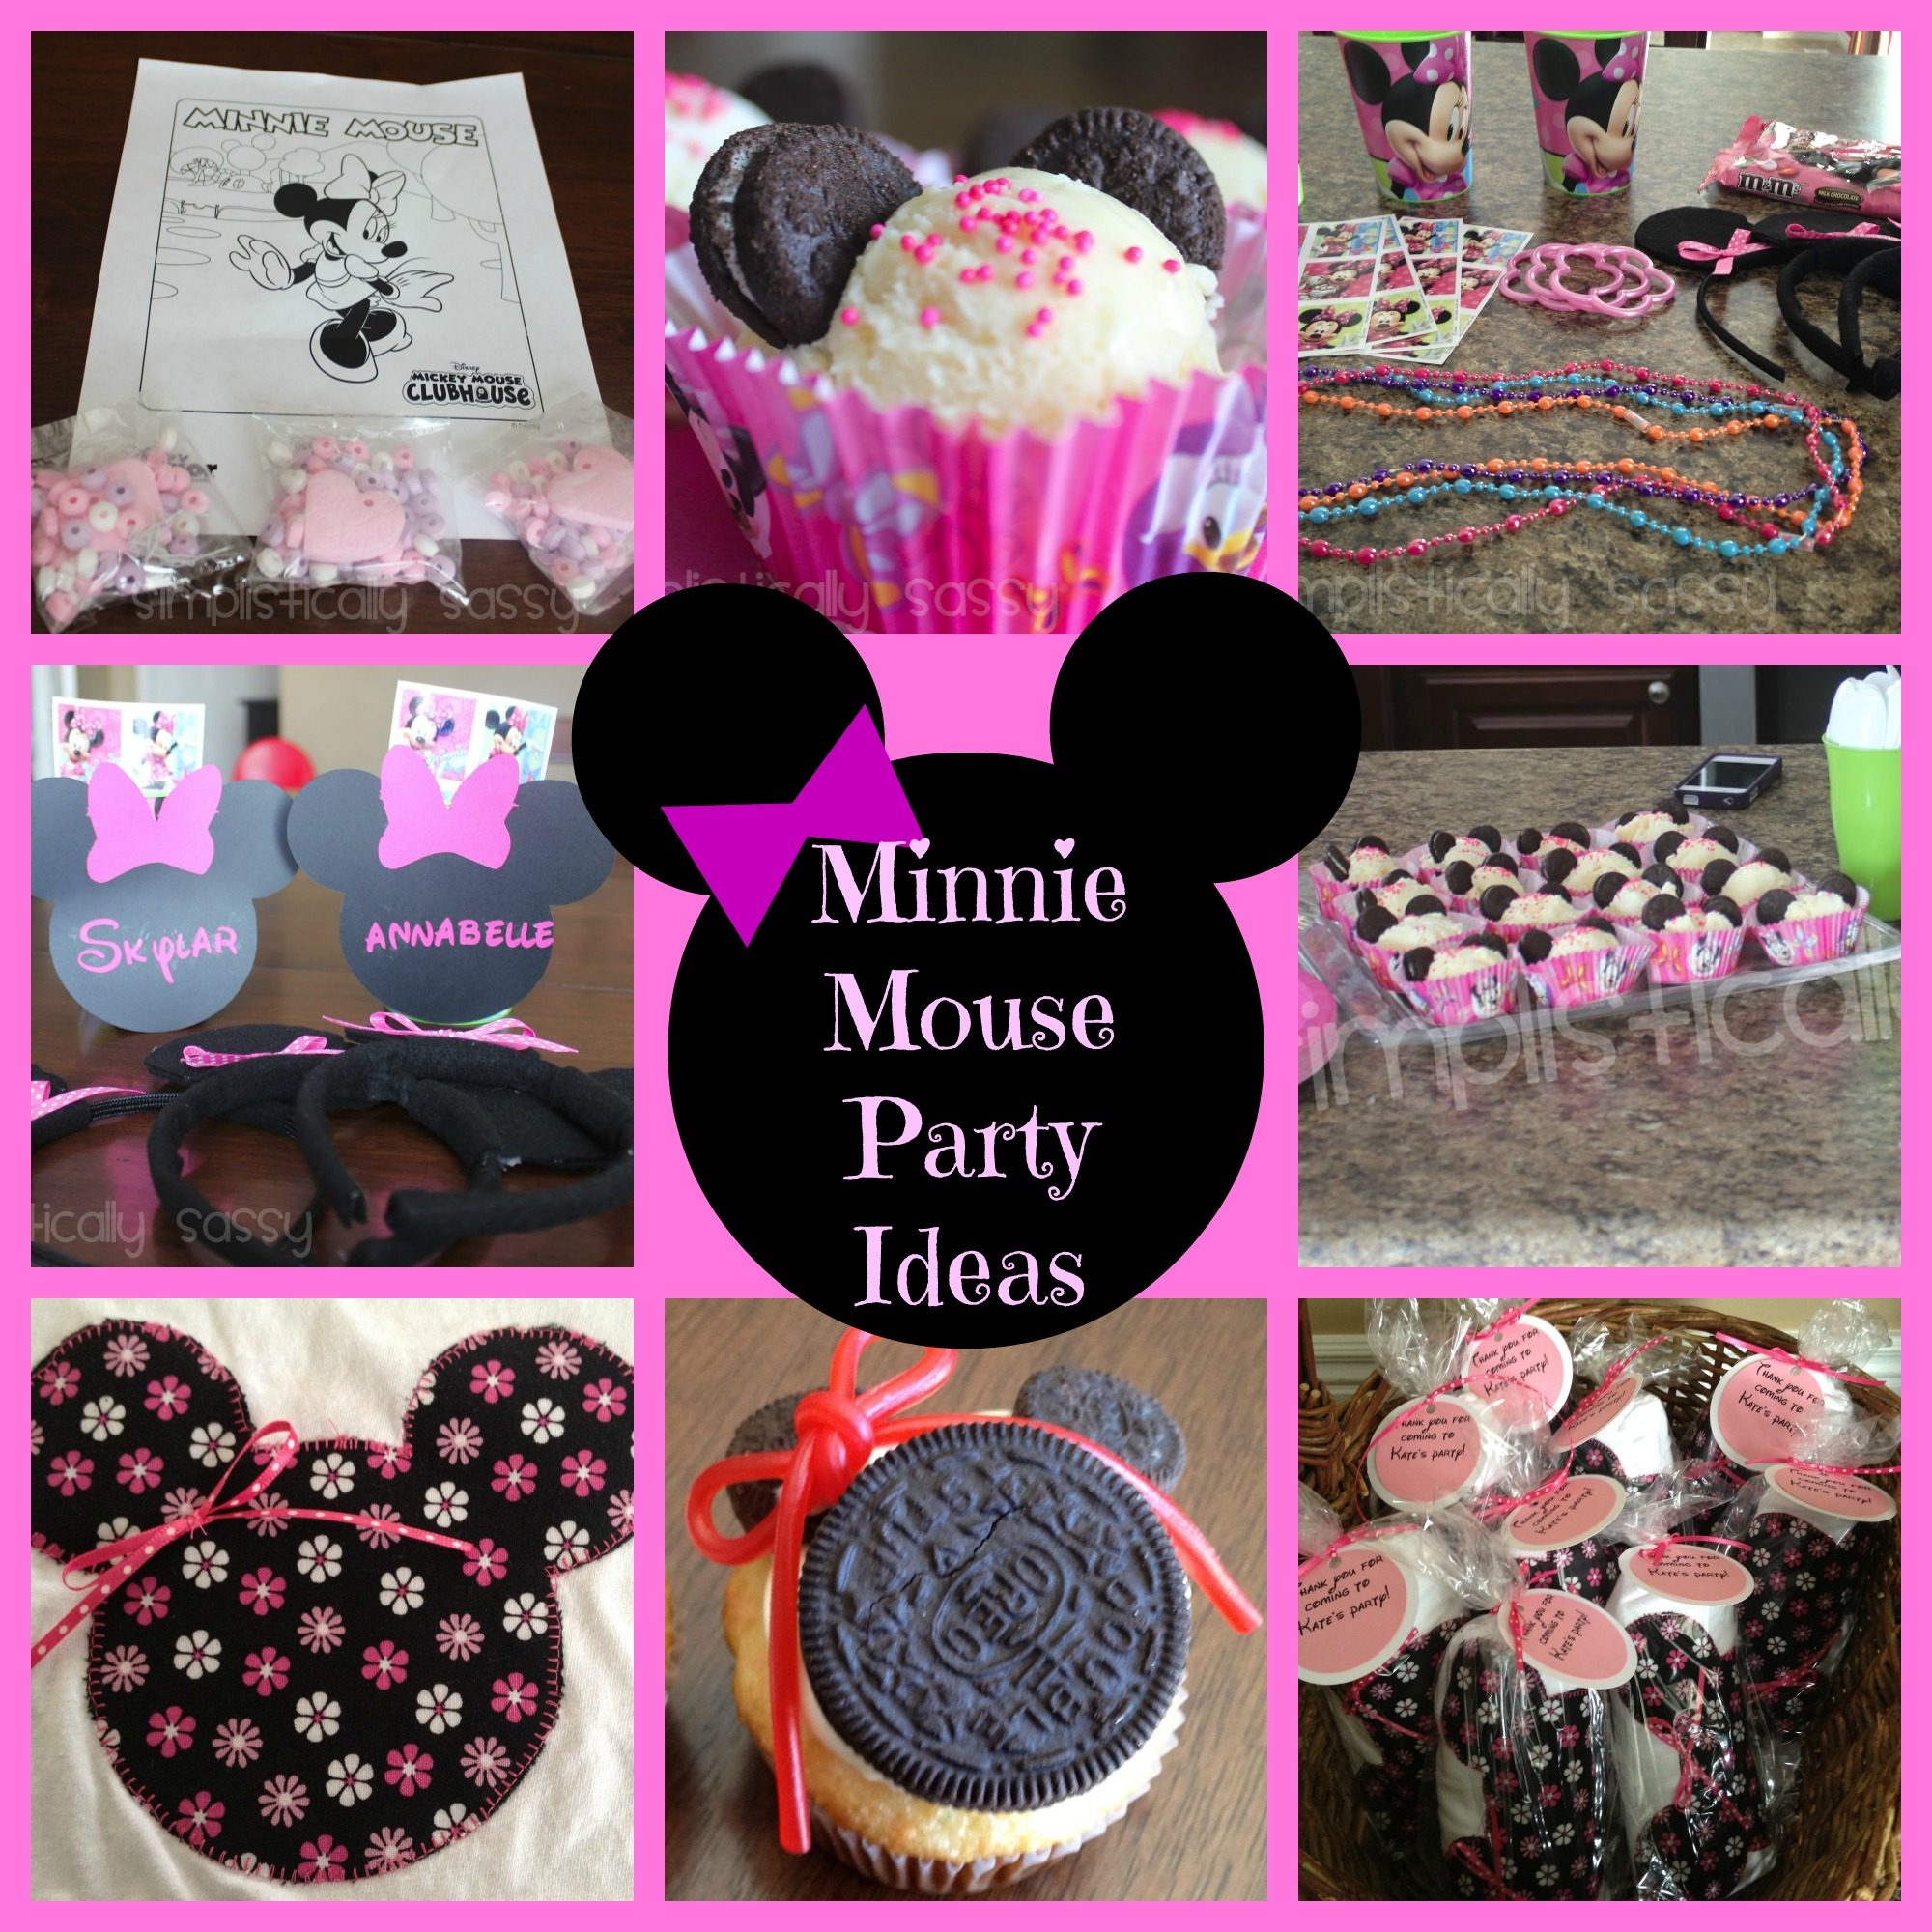 minnie mouse birthday party Archives - events to CELEBRATE!